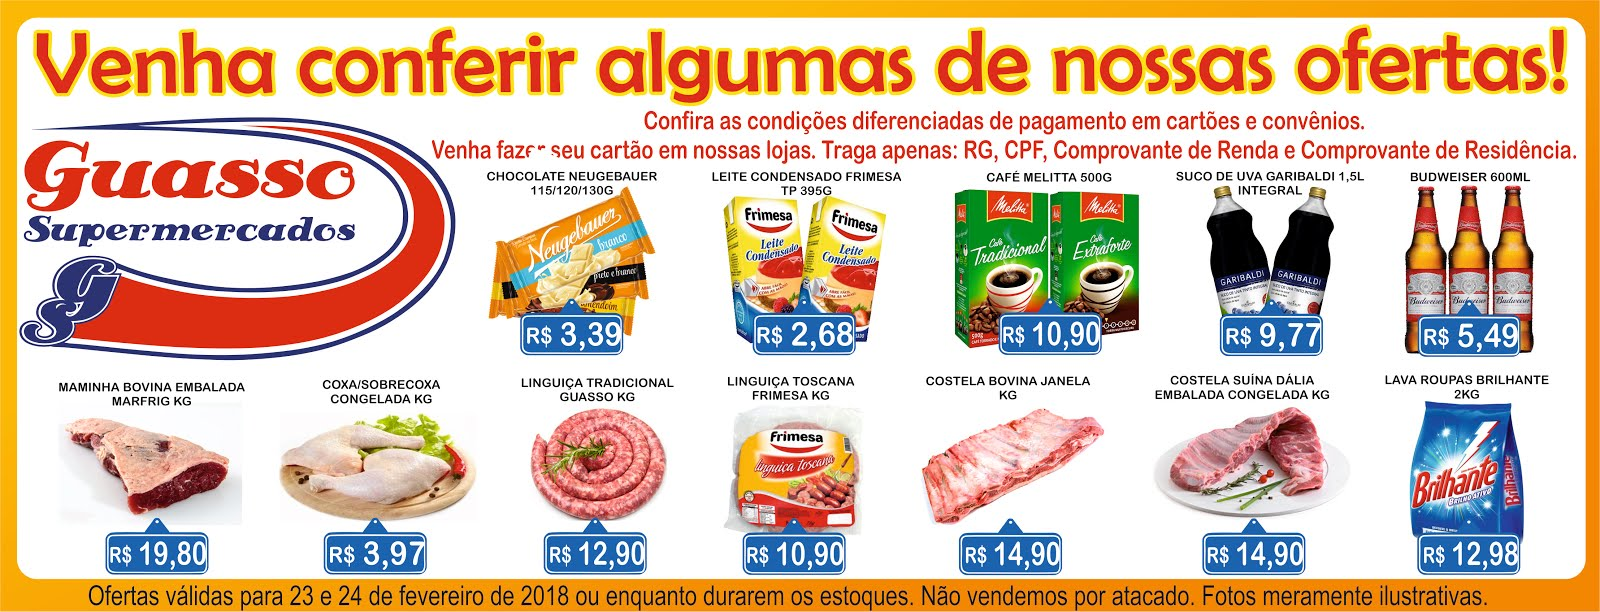 Confira algumas ofertas do Guasso Supermercados!!!